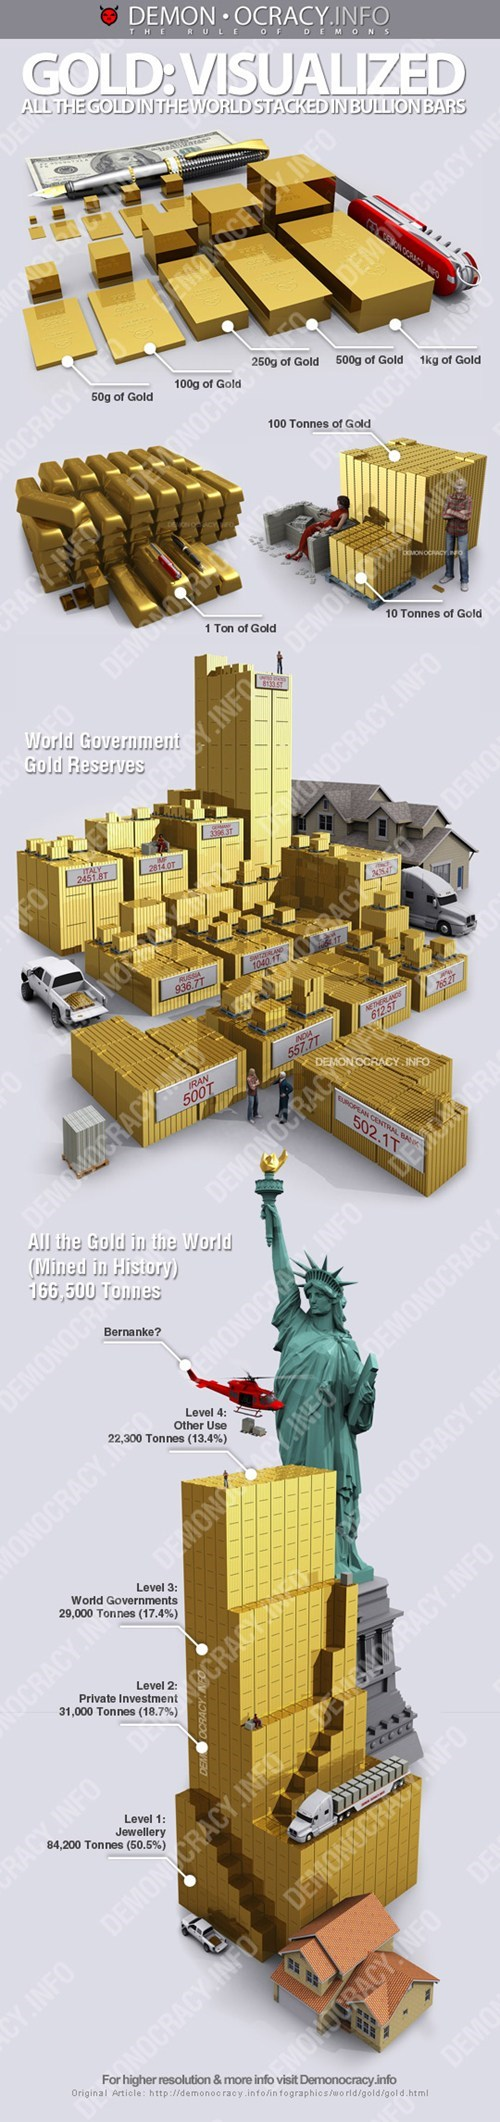 world,gold,wealth,infographic,money